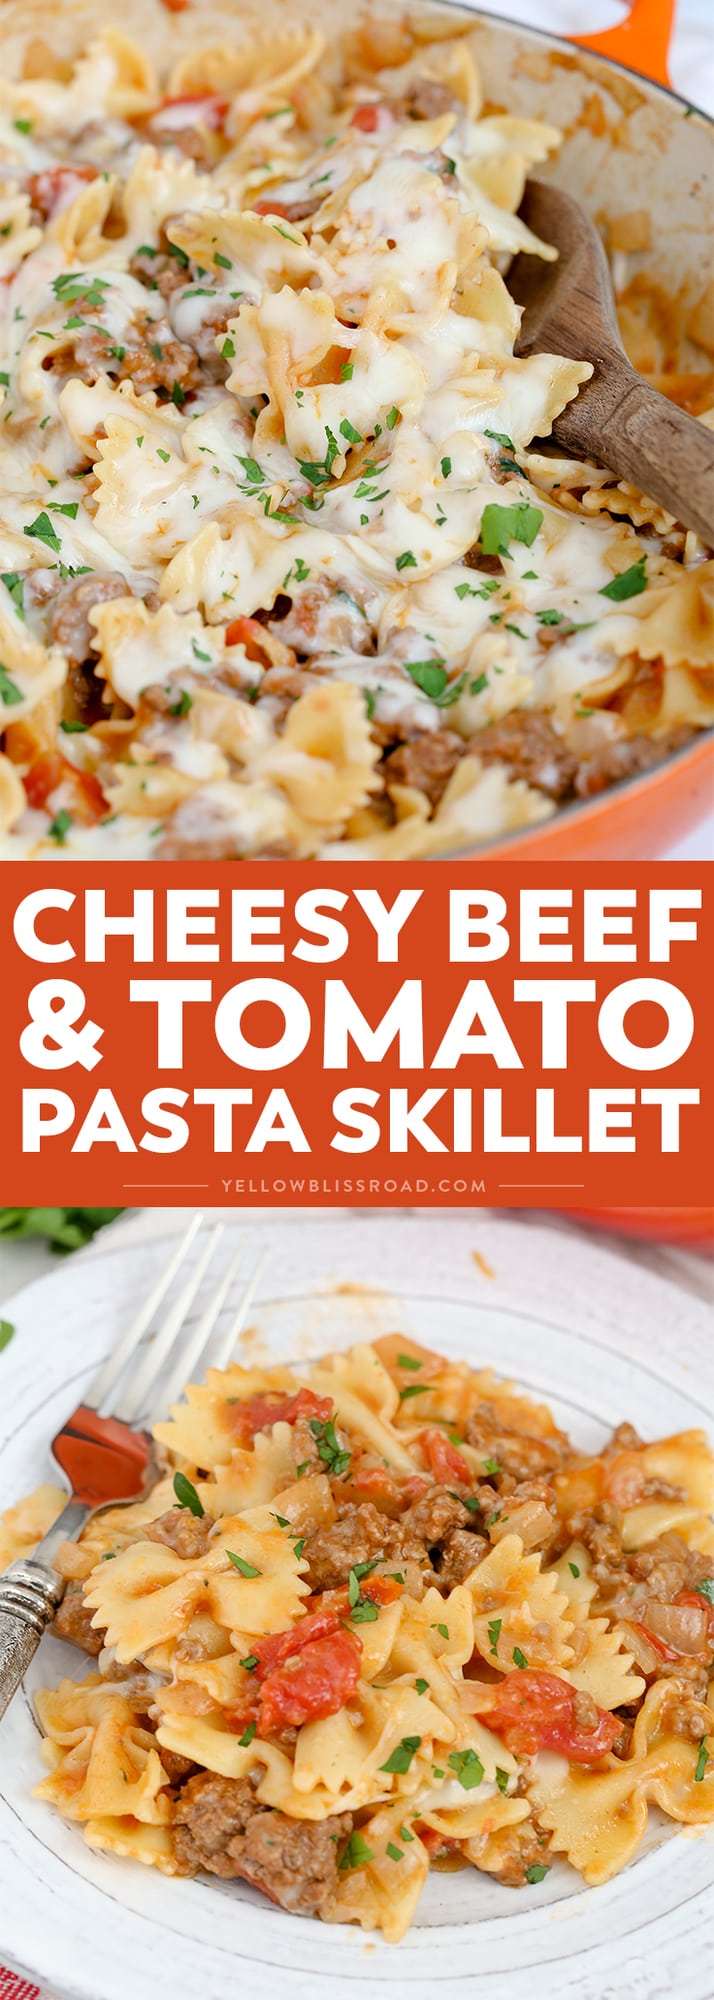 This Cheesy Beef & Tomato Pasta Skillet is sure to become your new favorite meal. All cooked in one pan, this easy weeknight dinner comes together in less than 30 minutes!